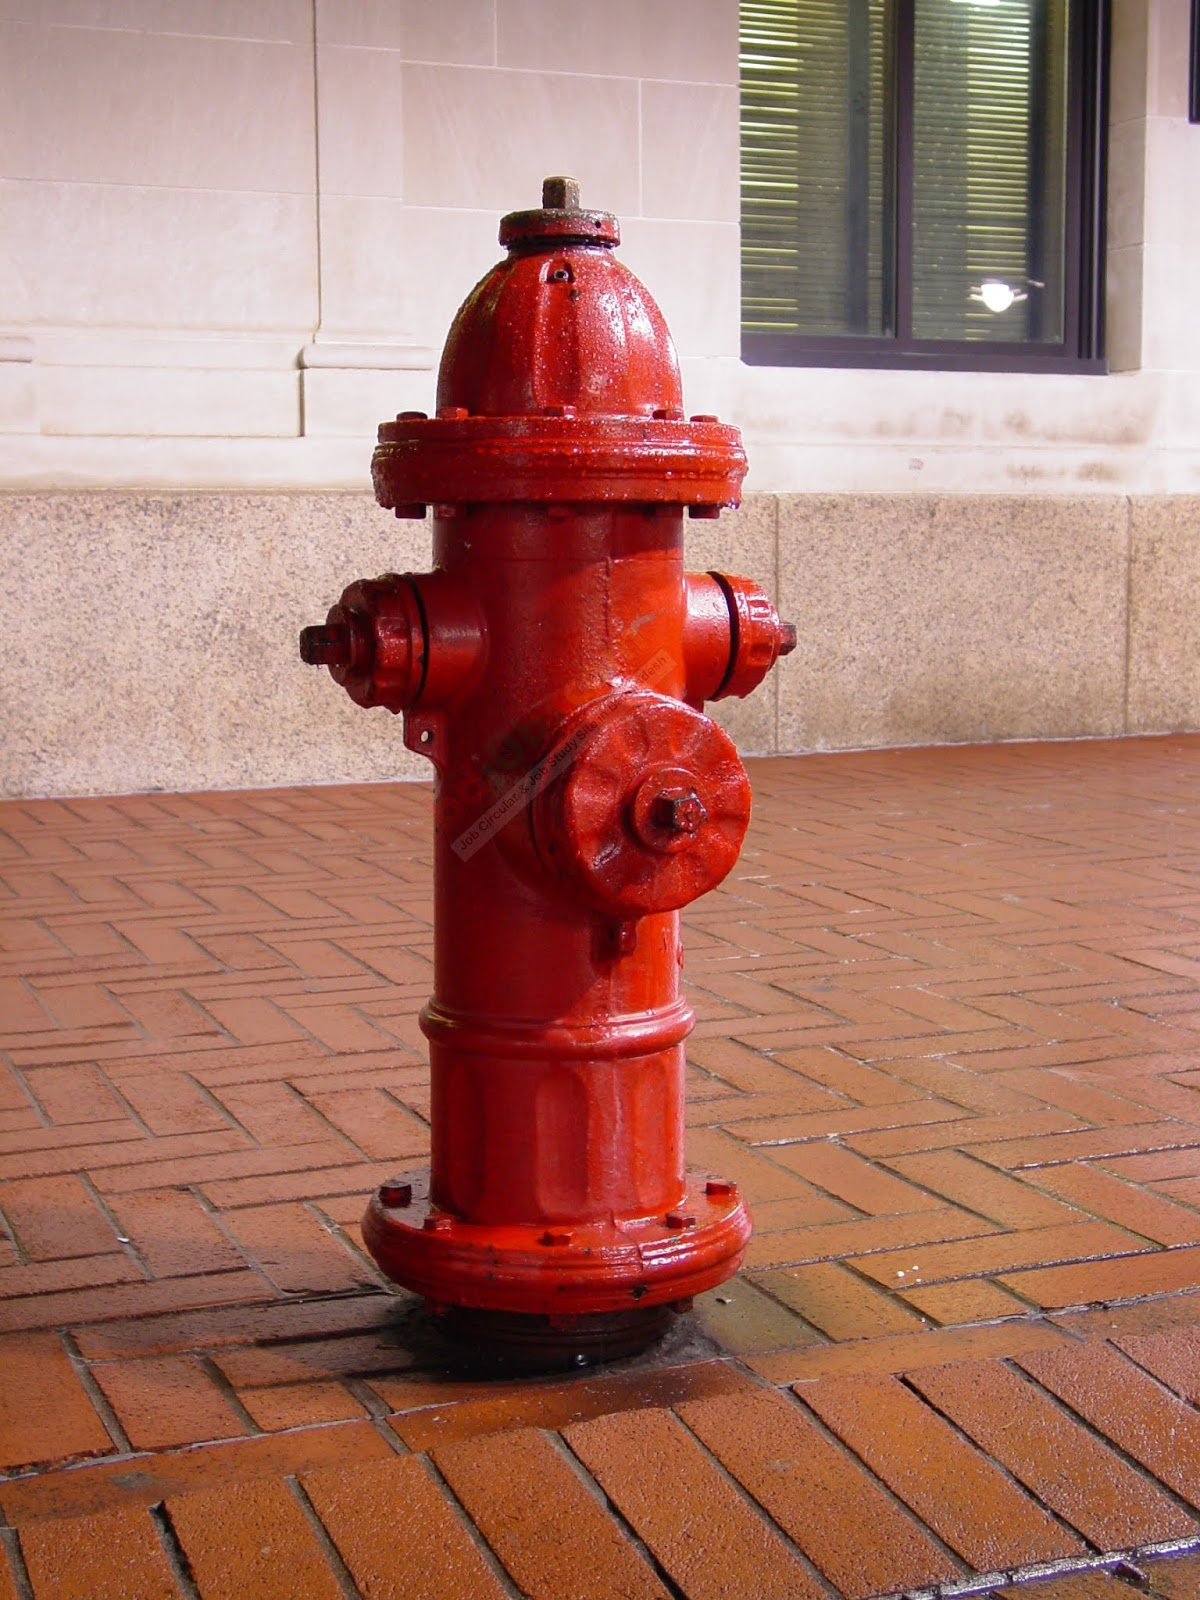 What is a Fire Hydrant? How Does it work?